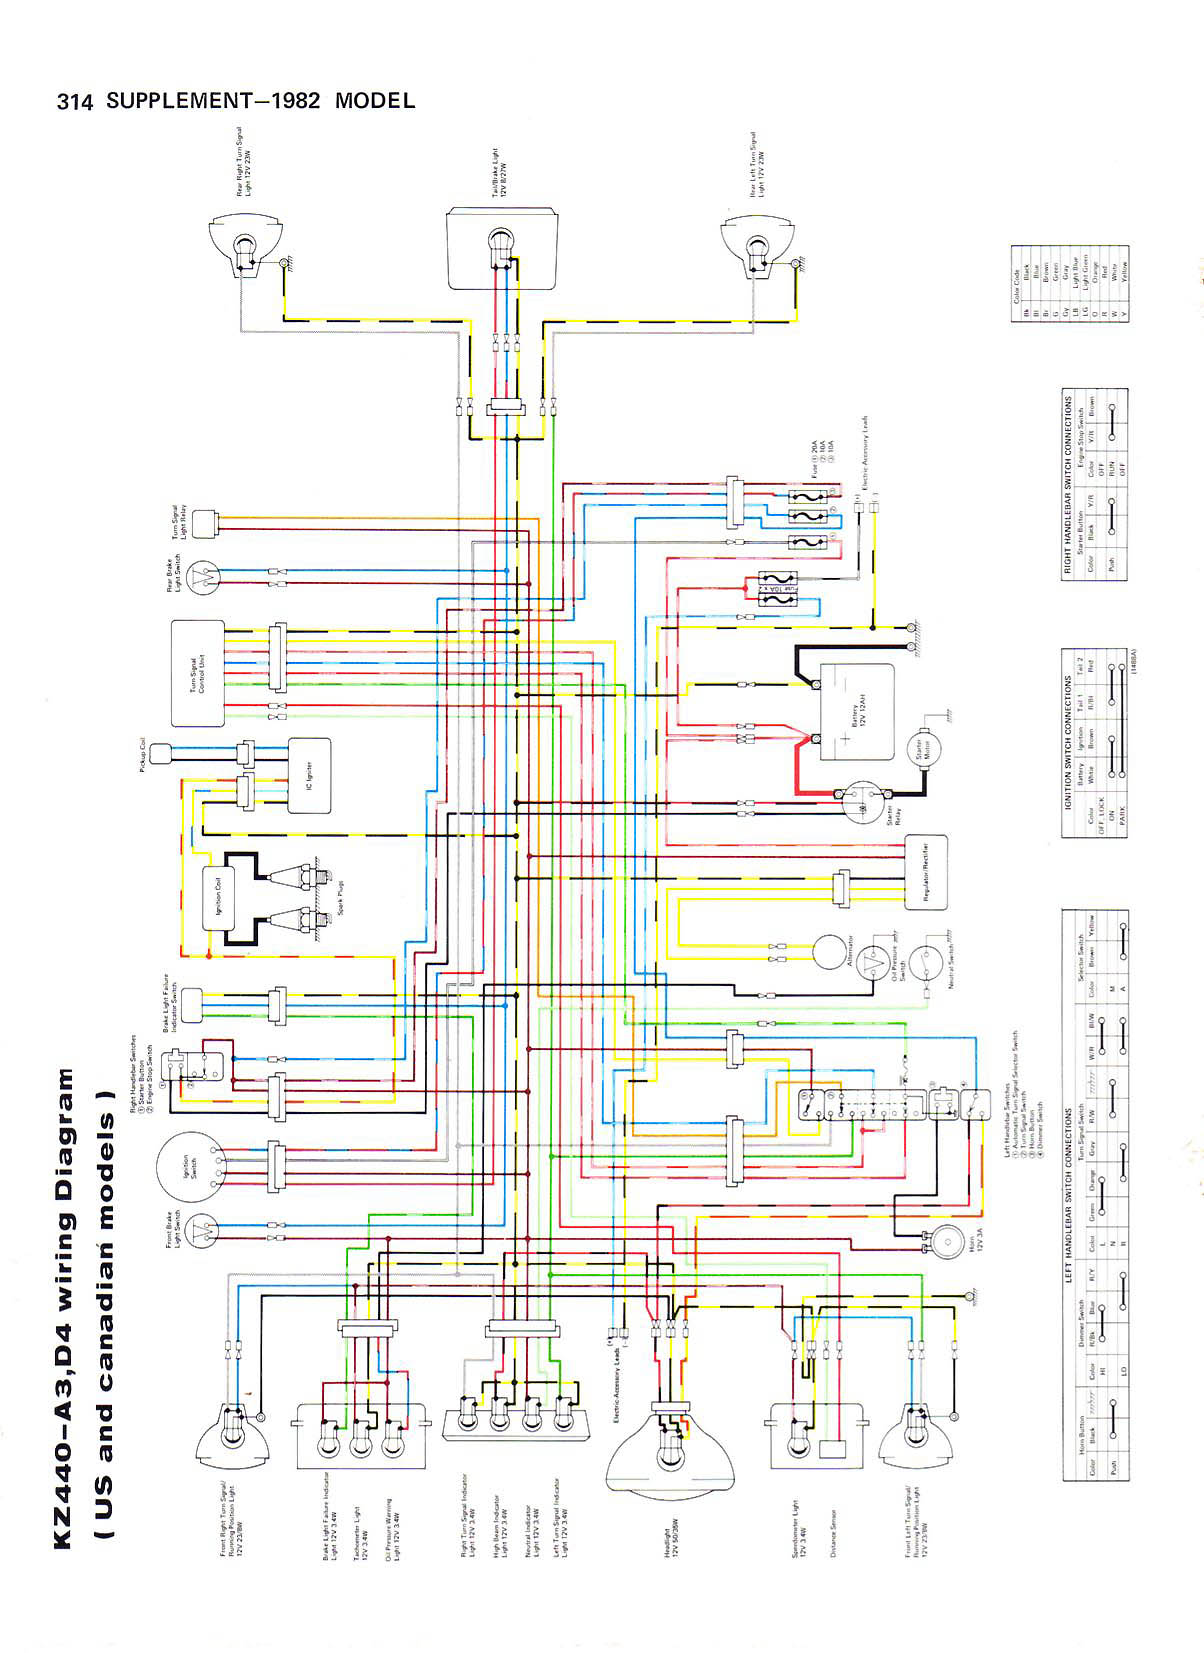 Kawasaki KZ 440 %2780 a %2782 Service Manual_Page_311 index of kz440 wiring diagrams 1980 Kawasaki KZ750 Wiring-Diagram at webbmarketing.co